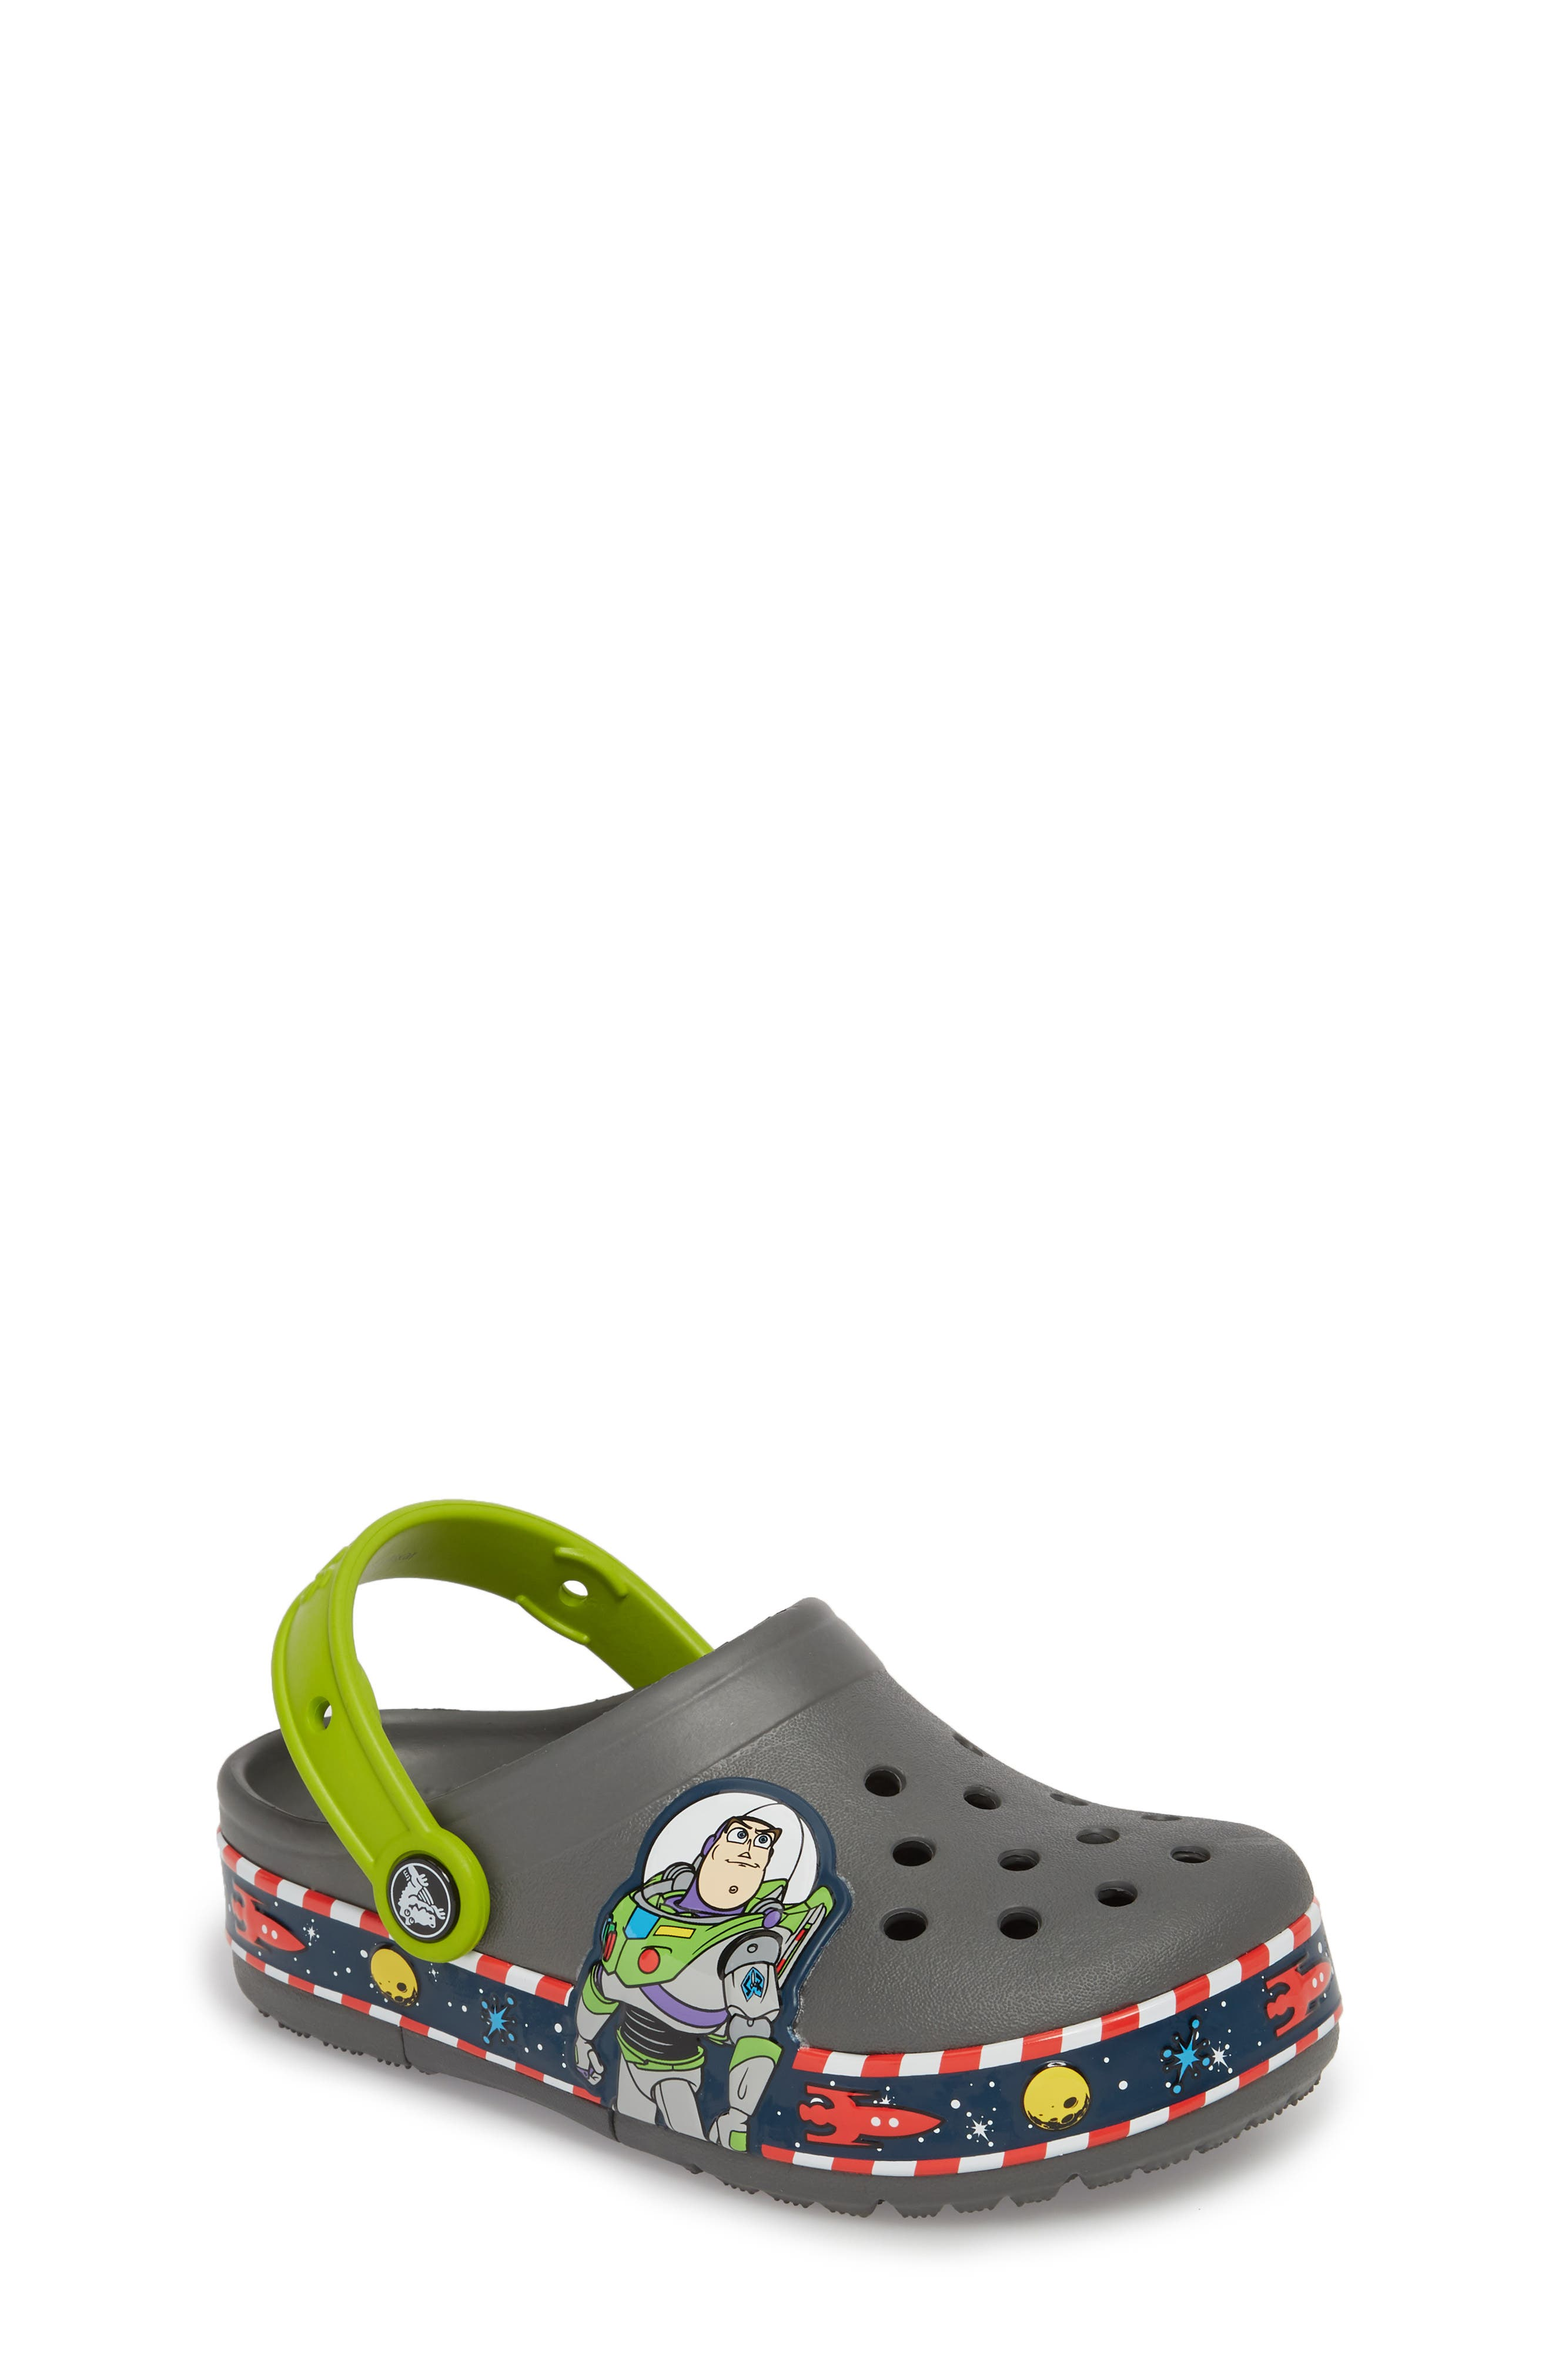 Disney Toy Story - Buzz Lightyear Crocband Light-Up Slip-On,                             Main thumbnail 1, color,                             025